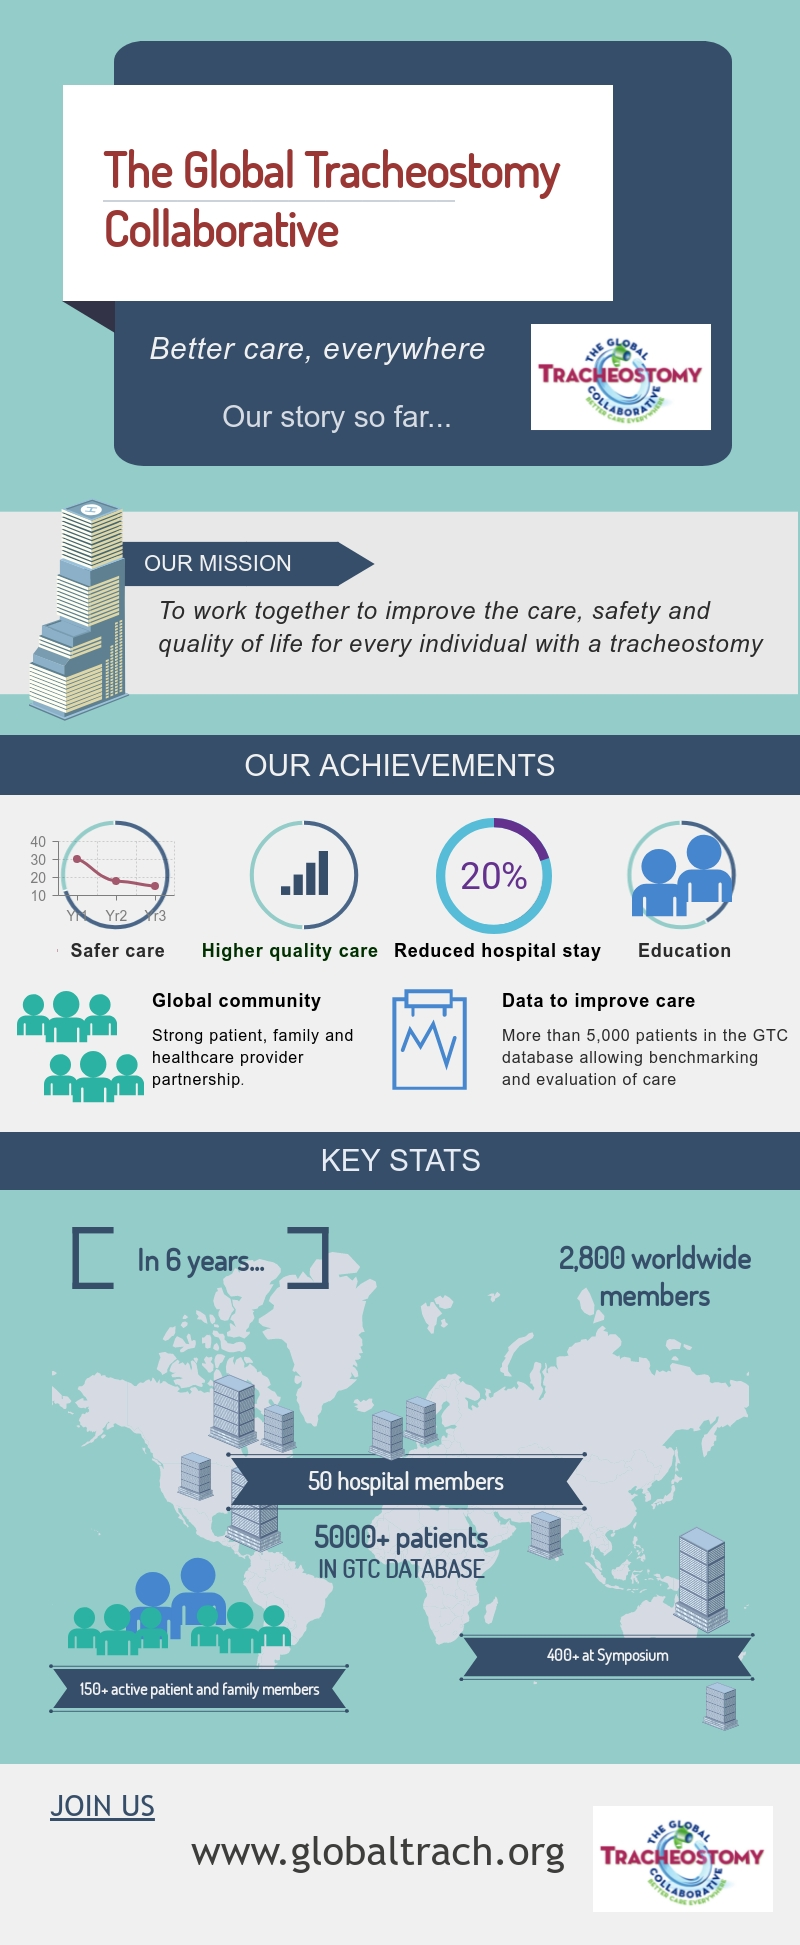 Our Mission, Achievements and Key Stats Infographic